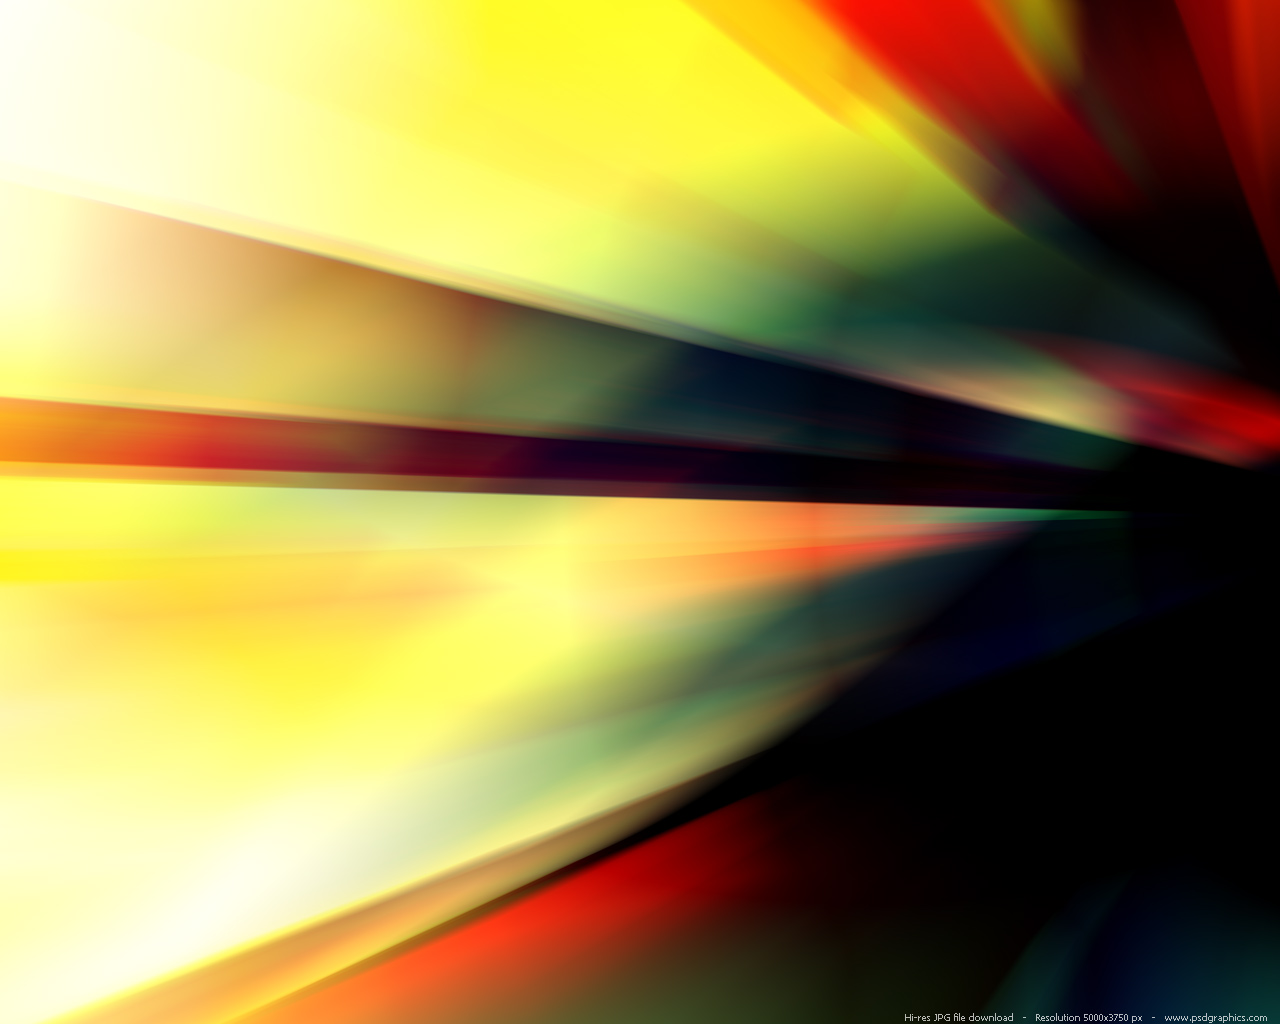 Abstract Motion Blur Background Psdgraphics HD Wallpapers Download Free Images Wallpaper [1000image.com]